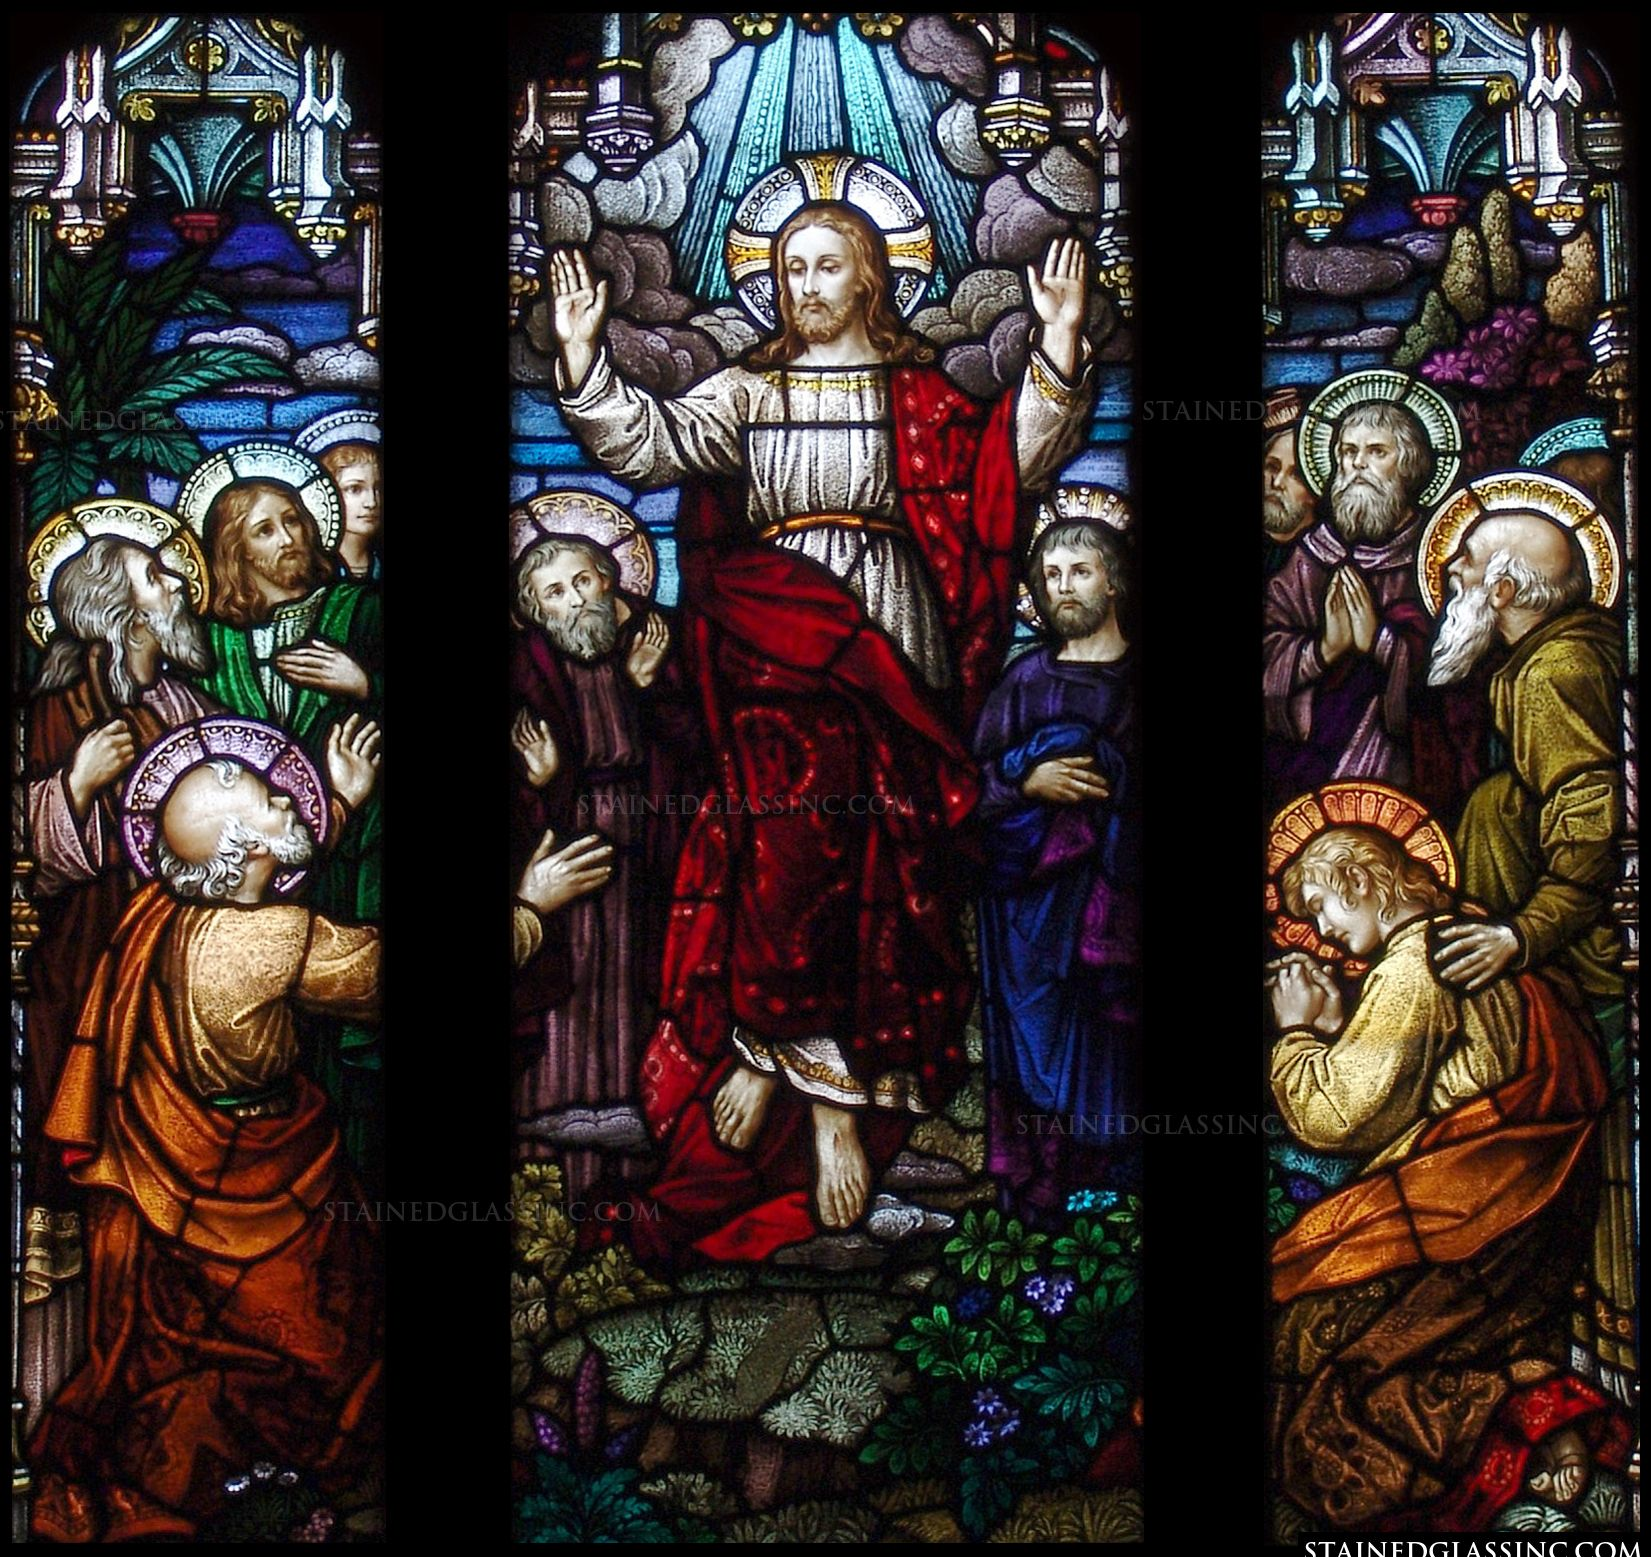 Jesus Stained Glass: The Ascension - About Stained Glass